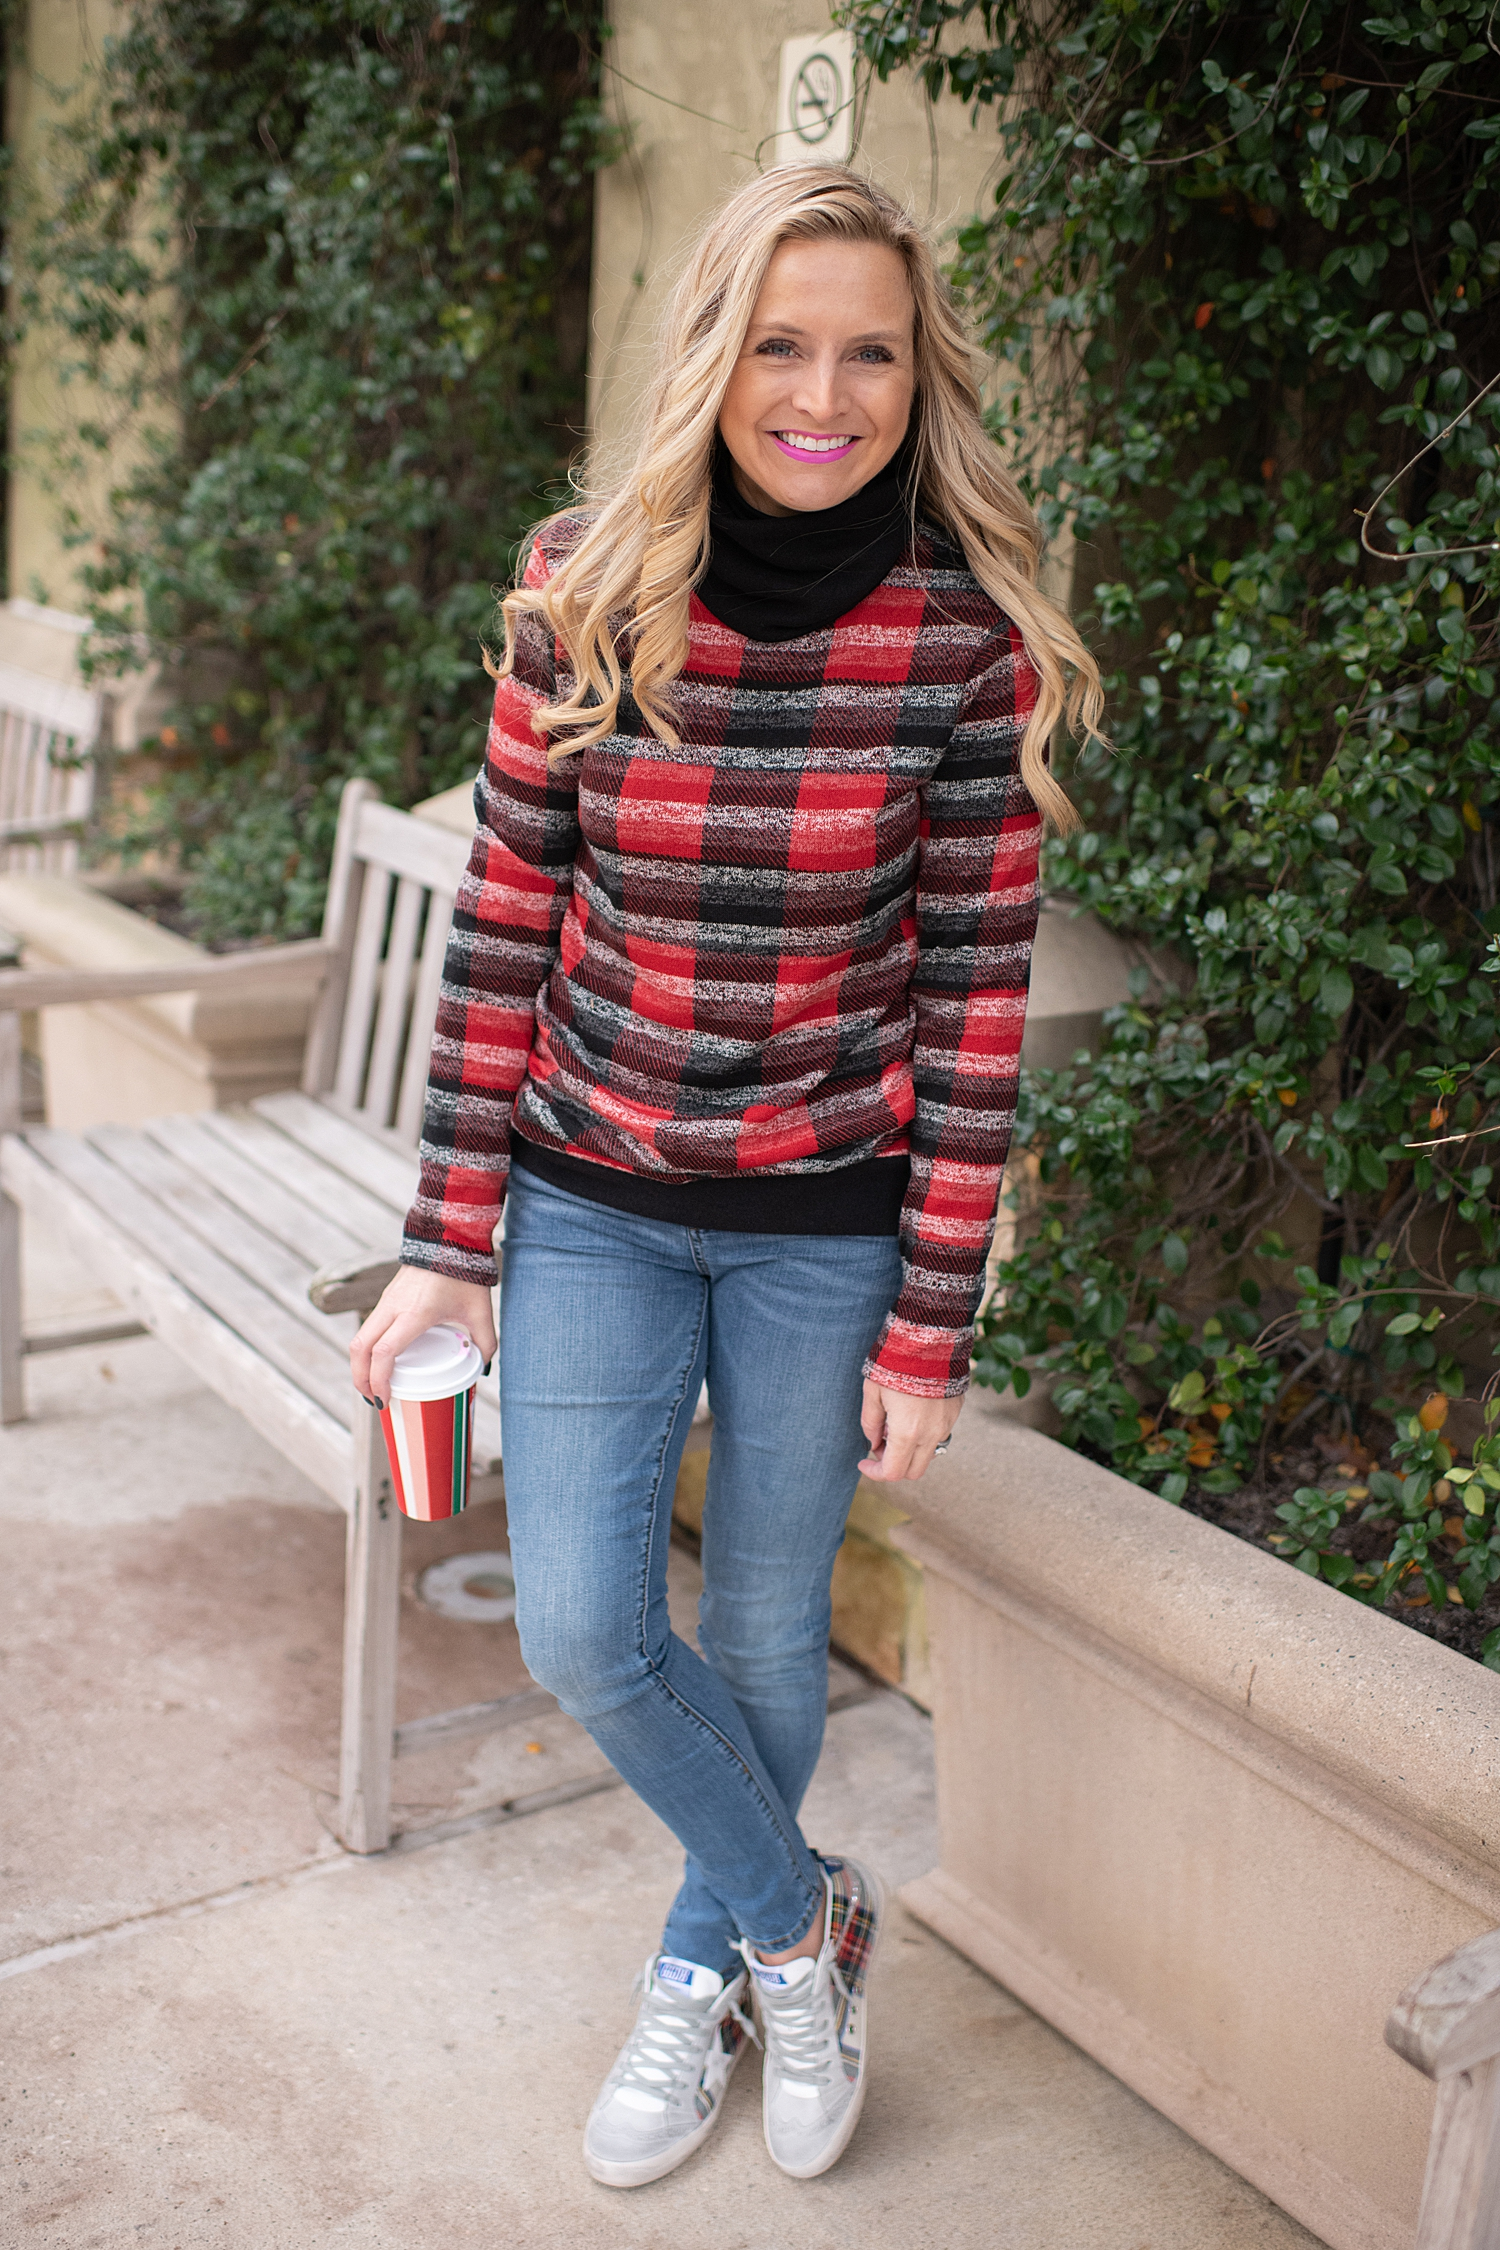 Fancy Ashley x Social Threads collection featured by top Houston fashion blogger, Fancy Ashley: image of a woman wearing a Social Threads plaid turtleneck, Social Threads skinny jeans and Golden Goose sneakers